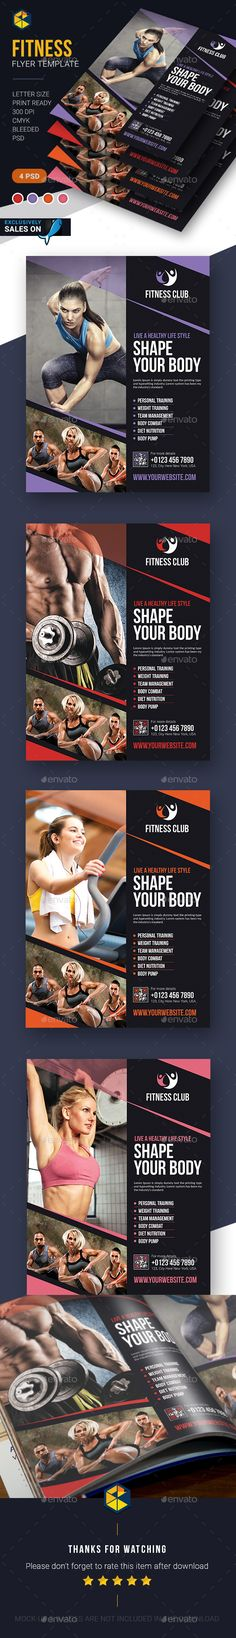 Fitness Flyer Template PSD #design Download: http://graphicriver.net/item/fitness-flyer-template/14327248?ref=ksioks